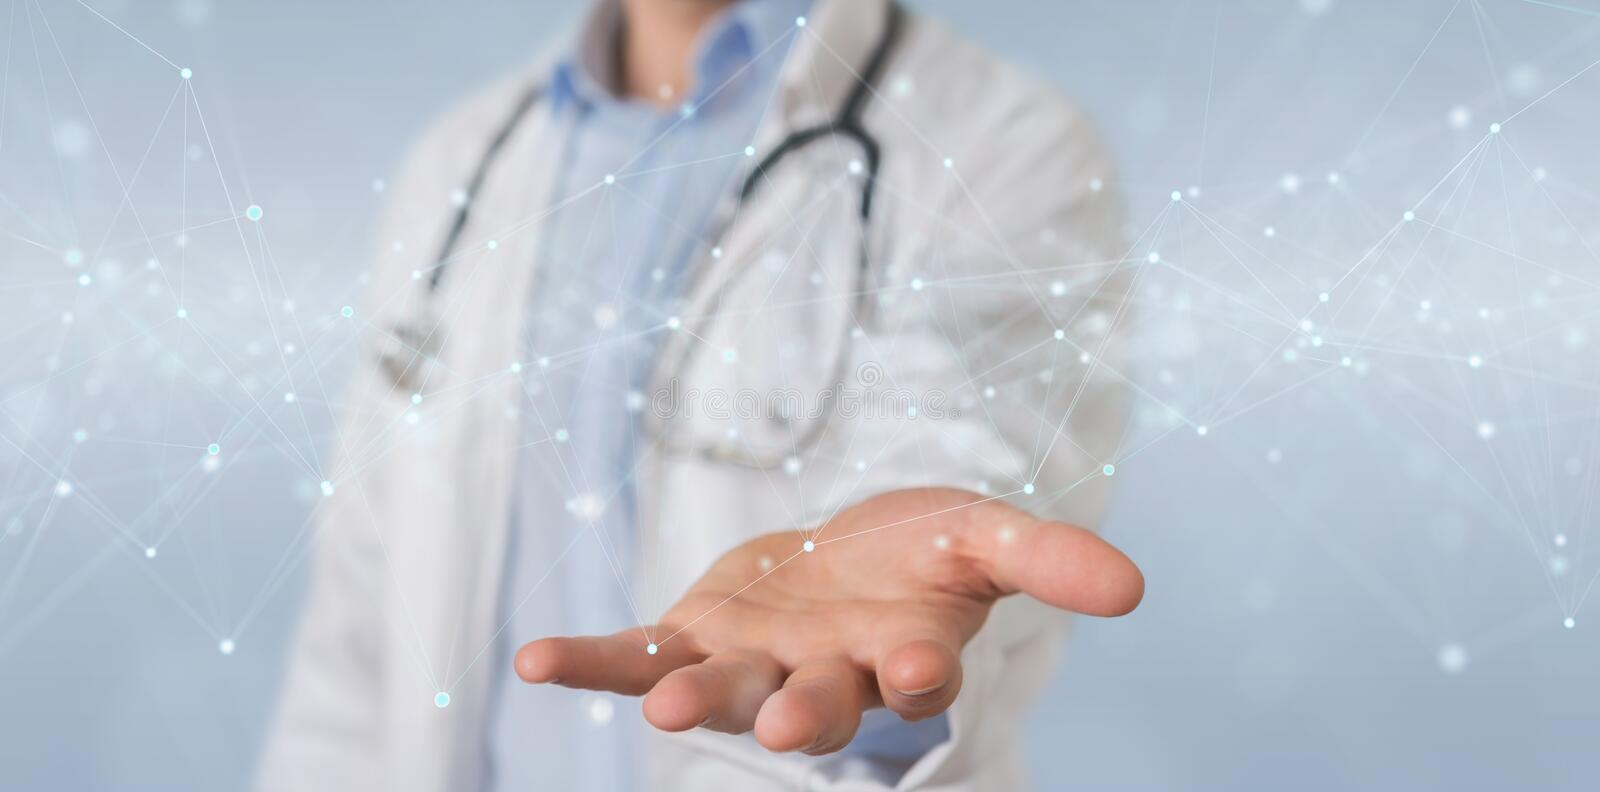 Scientist using floating digital network connections with dots and lines 3D rendering stock illustration